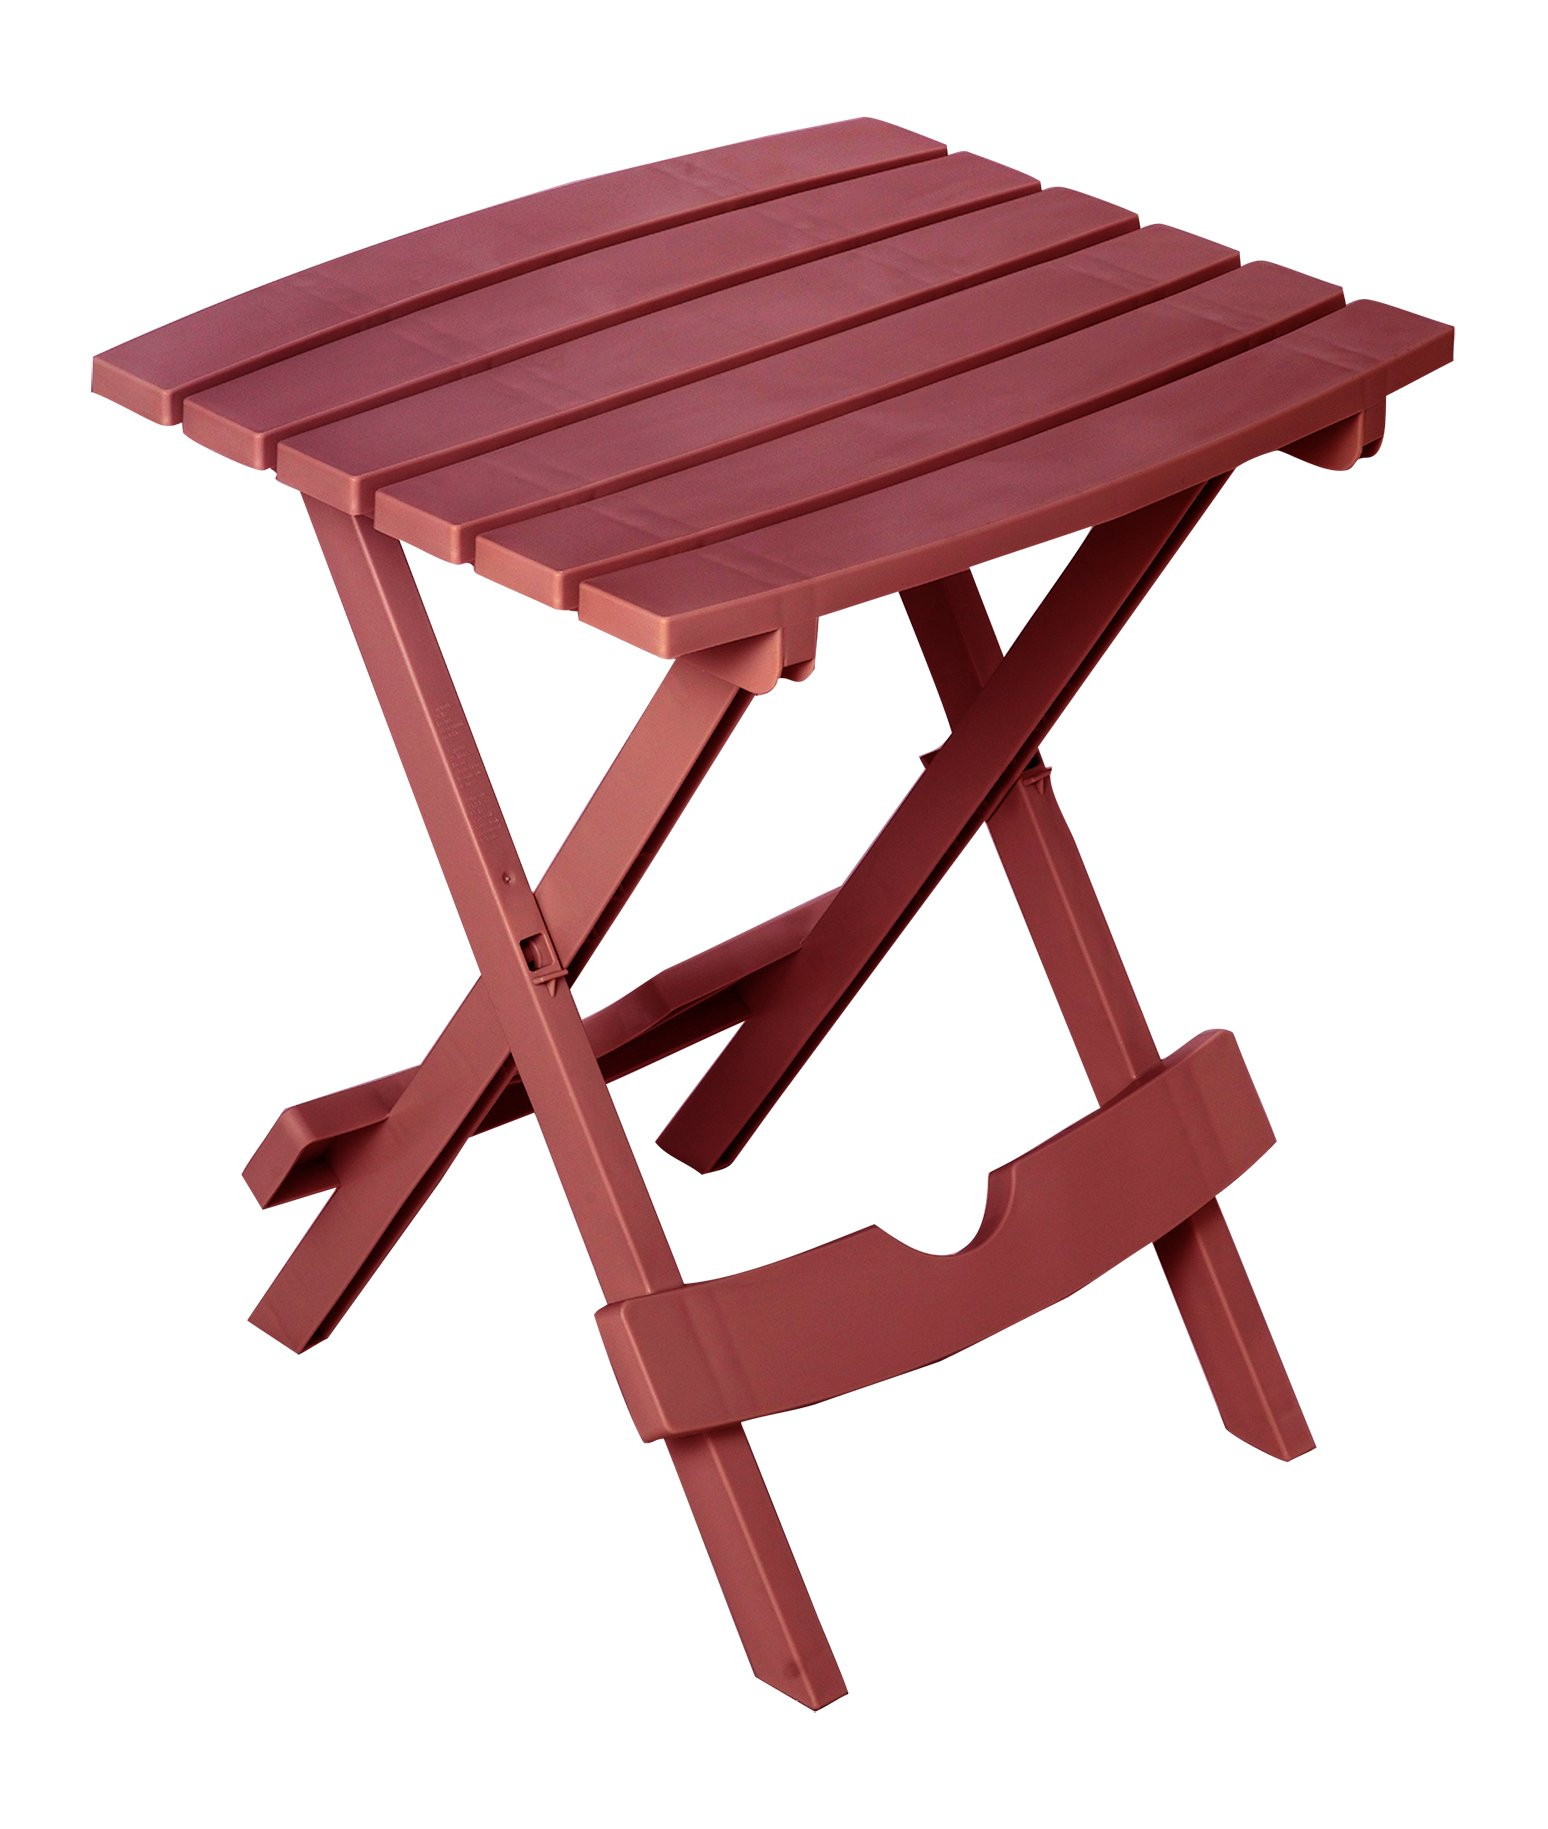 Adams Manufacturing 8500-95-3700 Plastic Quik-Fold Side Table, Merlot by Adams Manufacturing